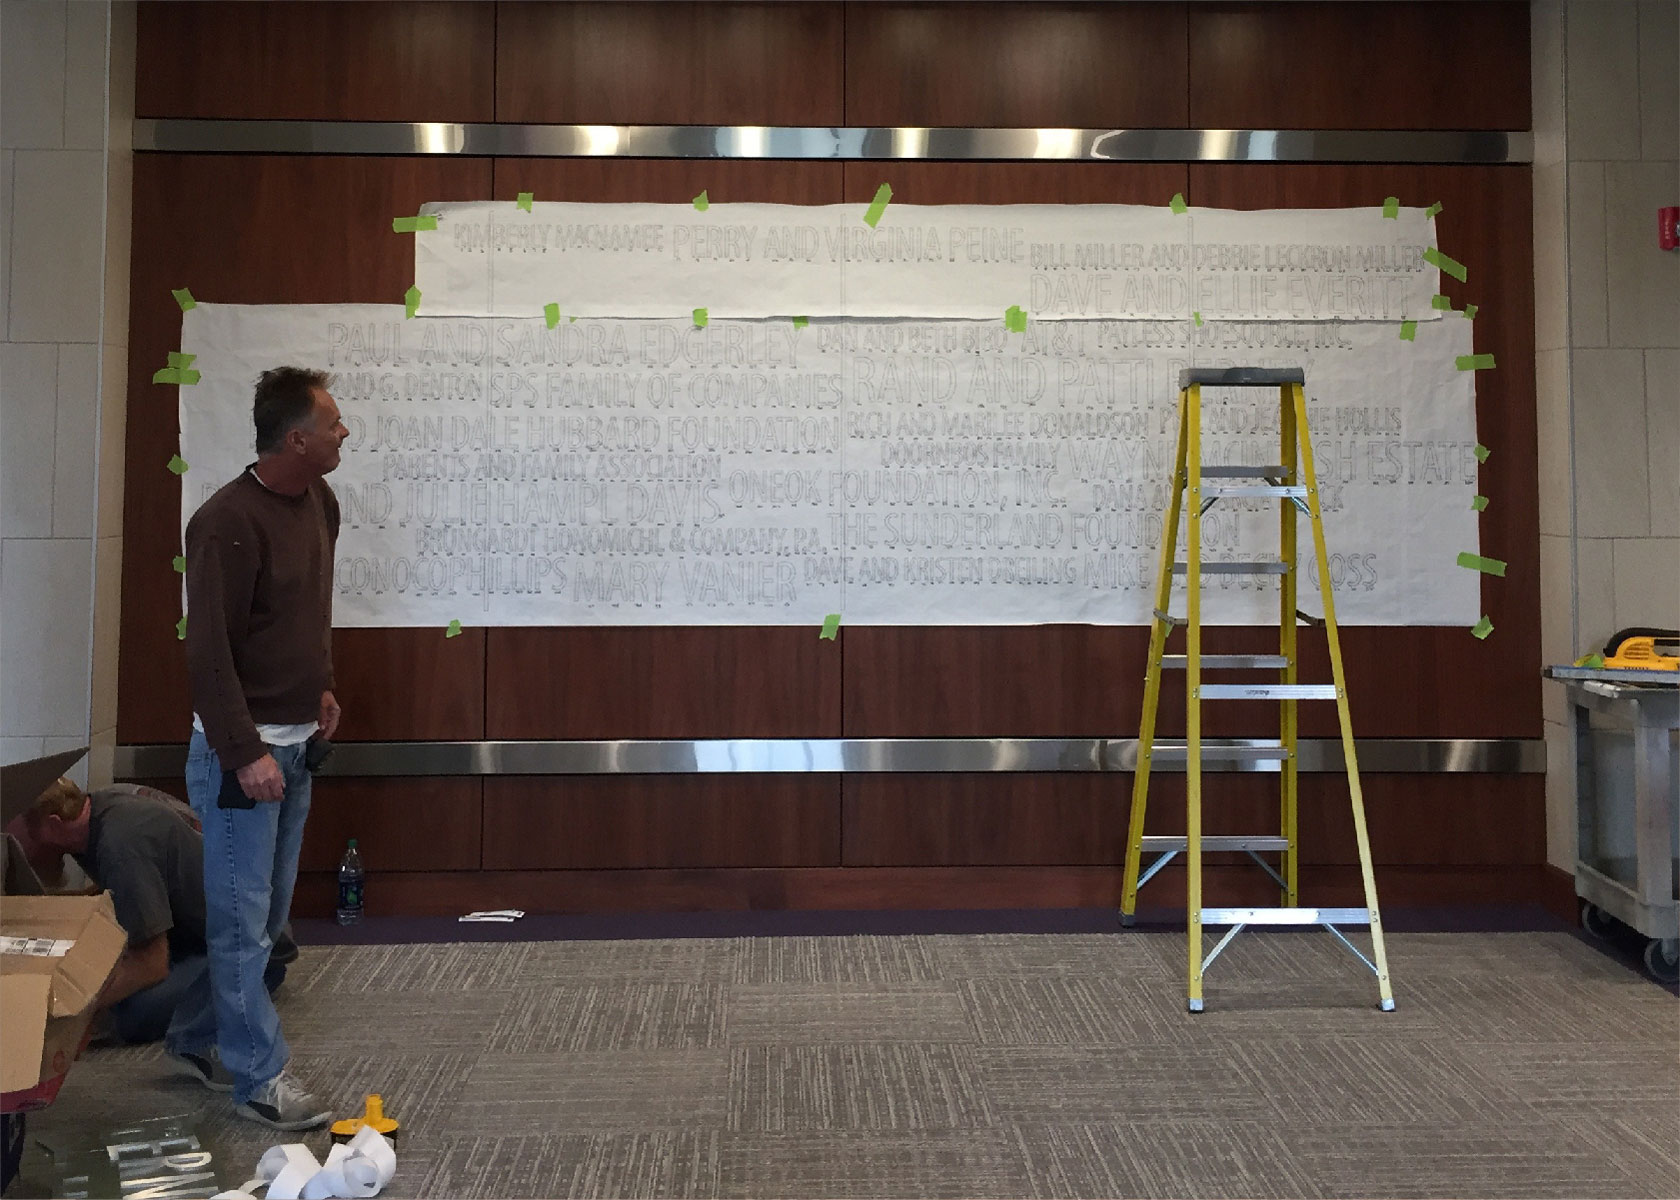 Michael Courtney prepares to display the type for the donor recognition wall at The Berney Family Welcome Center at Kansas State University.